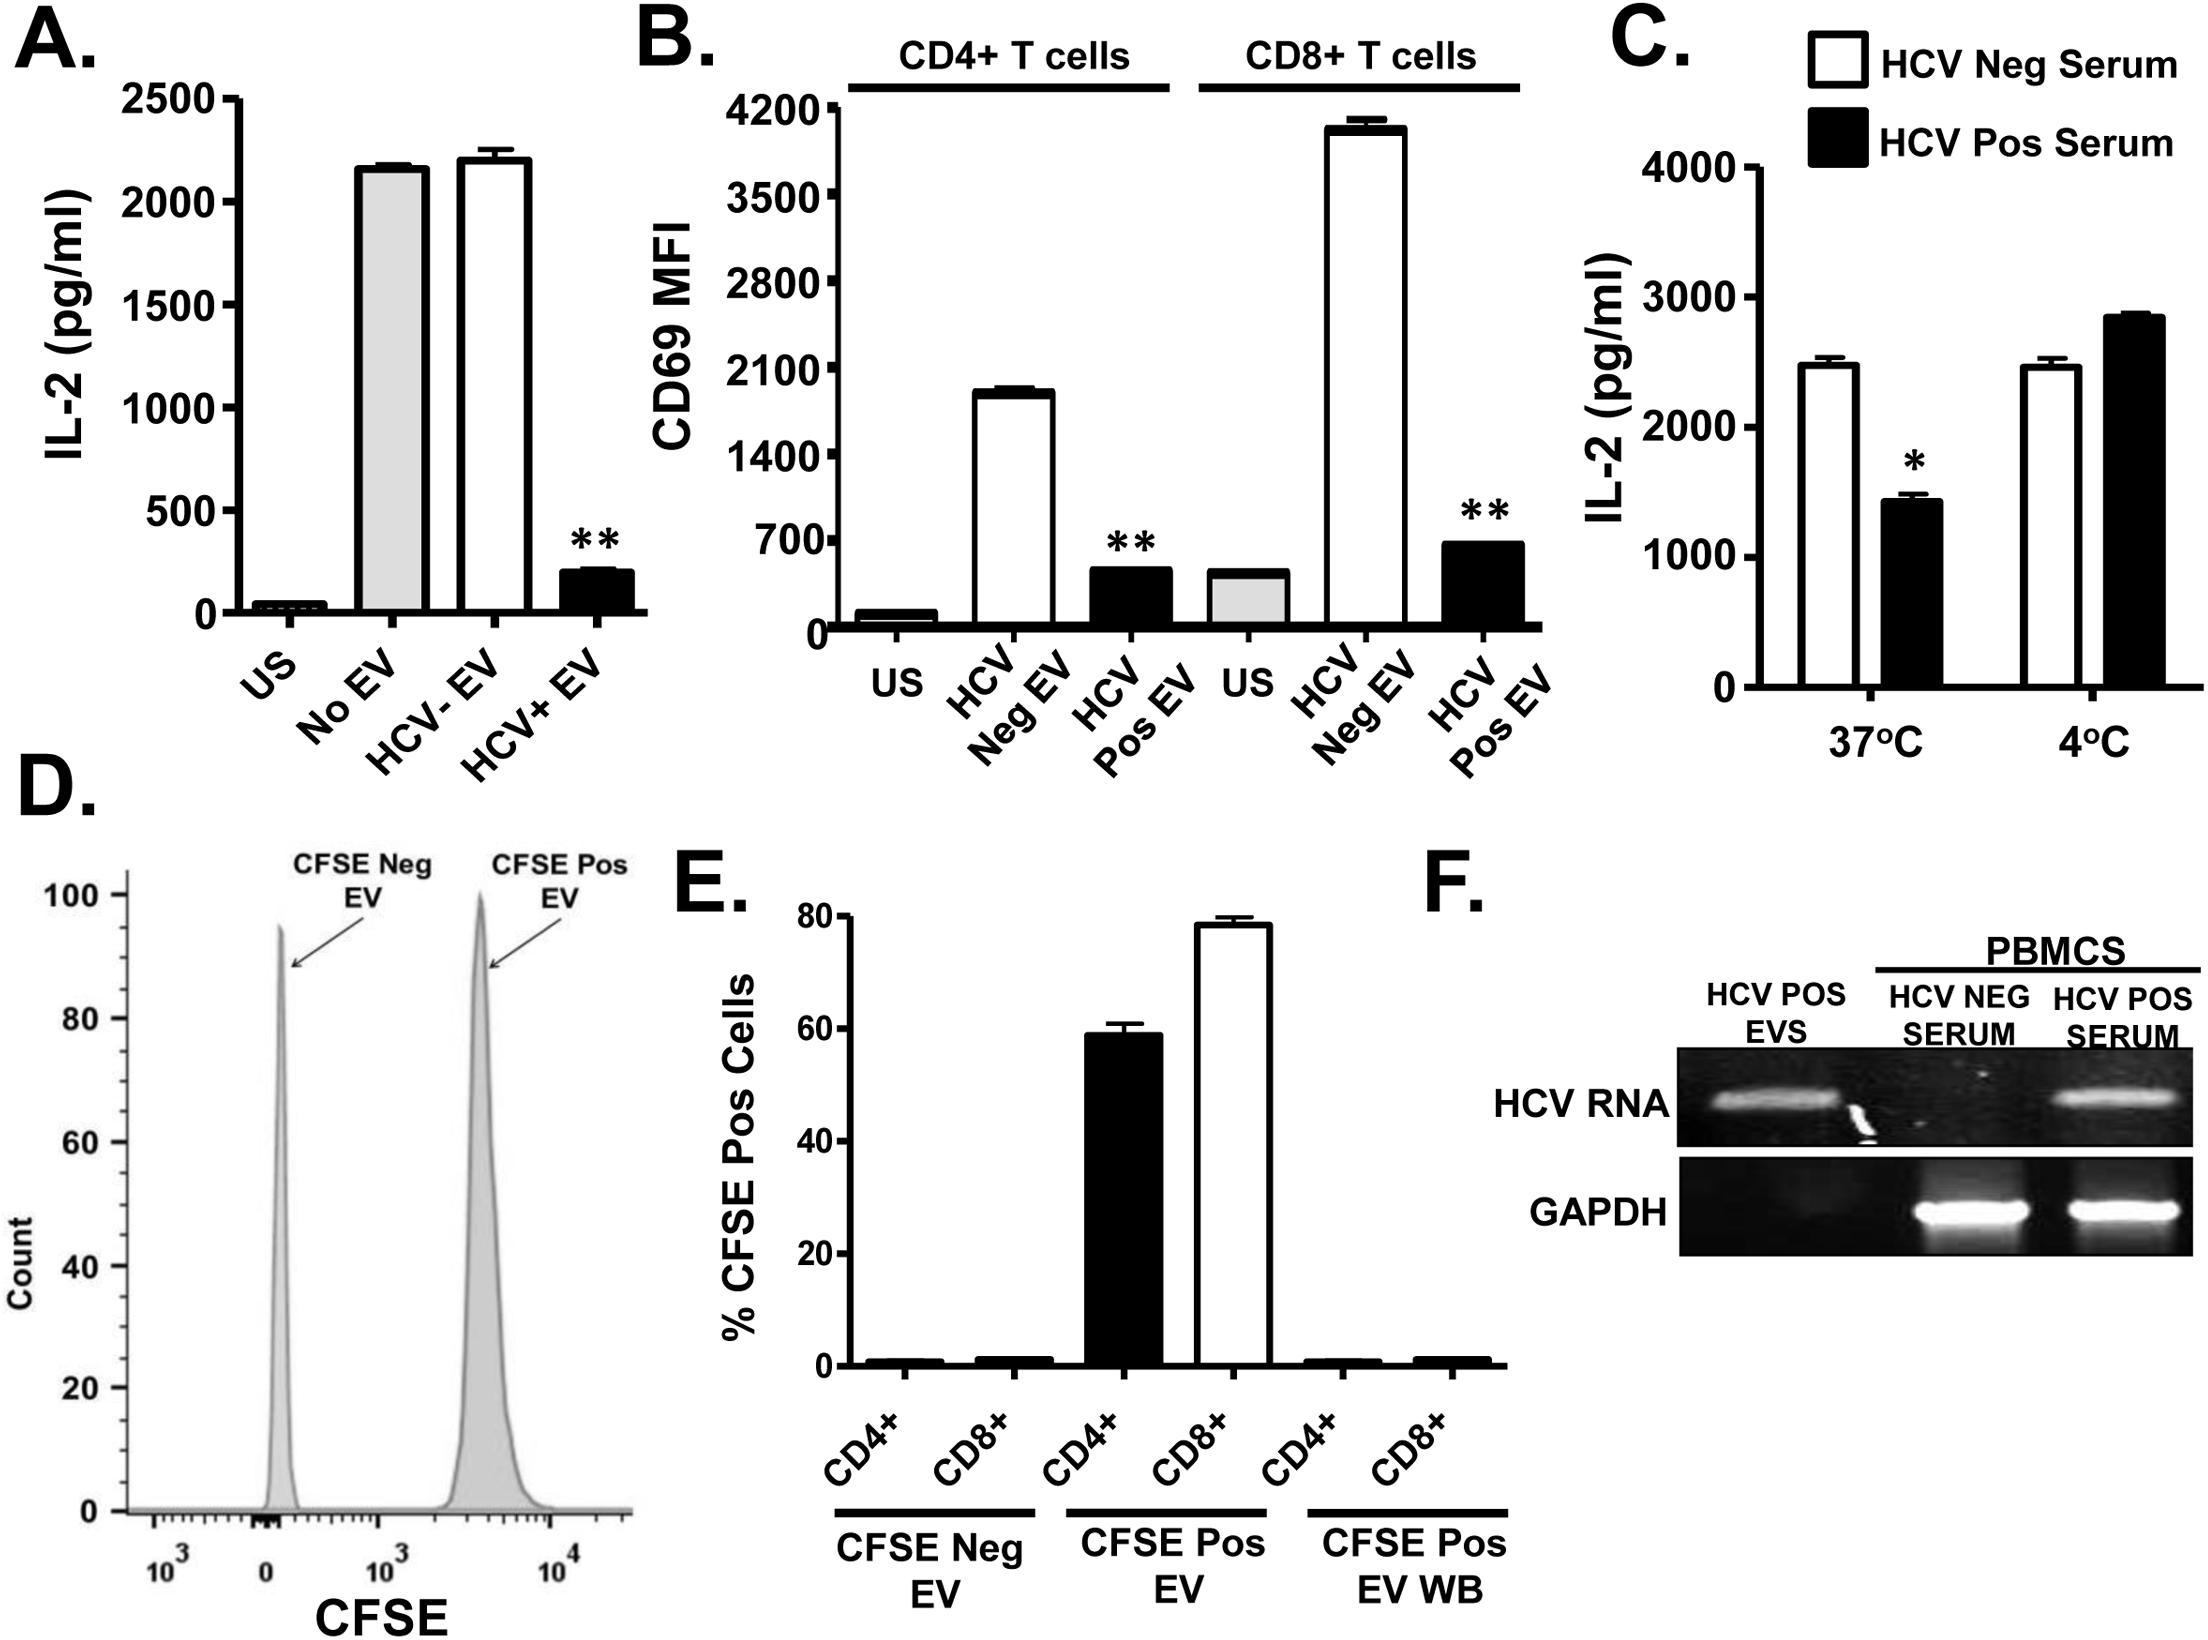 HCV serum derived extracellular vesicles (EV) inhibit T cell receptor (TCR) signaling in primary human T lymphocytes.